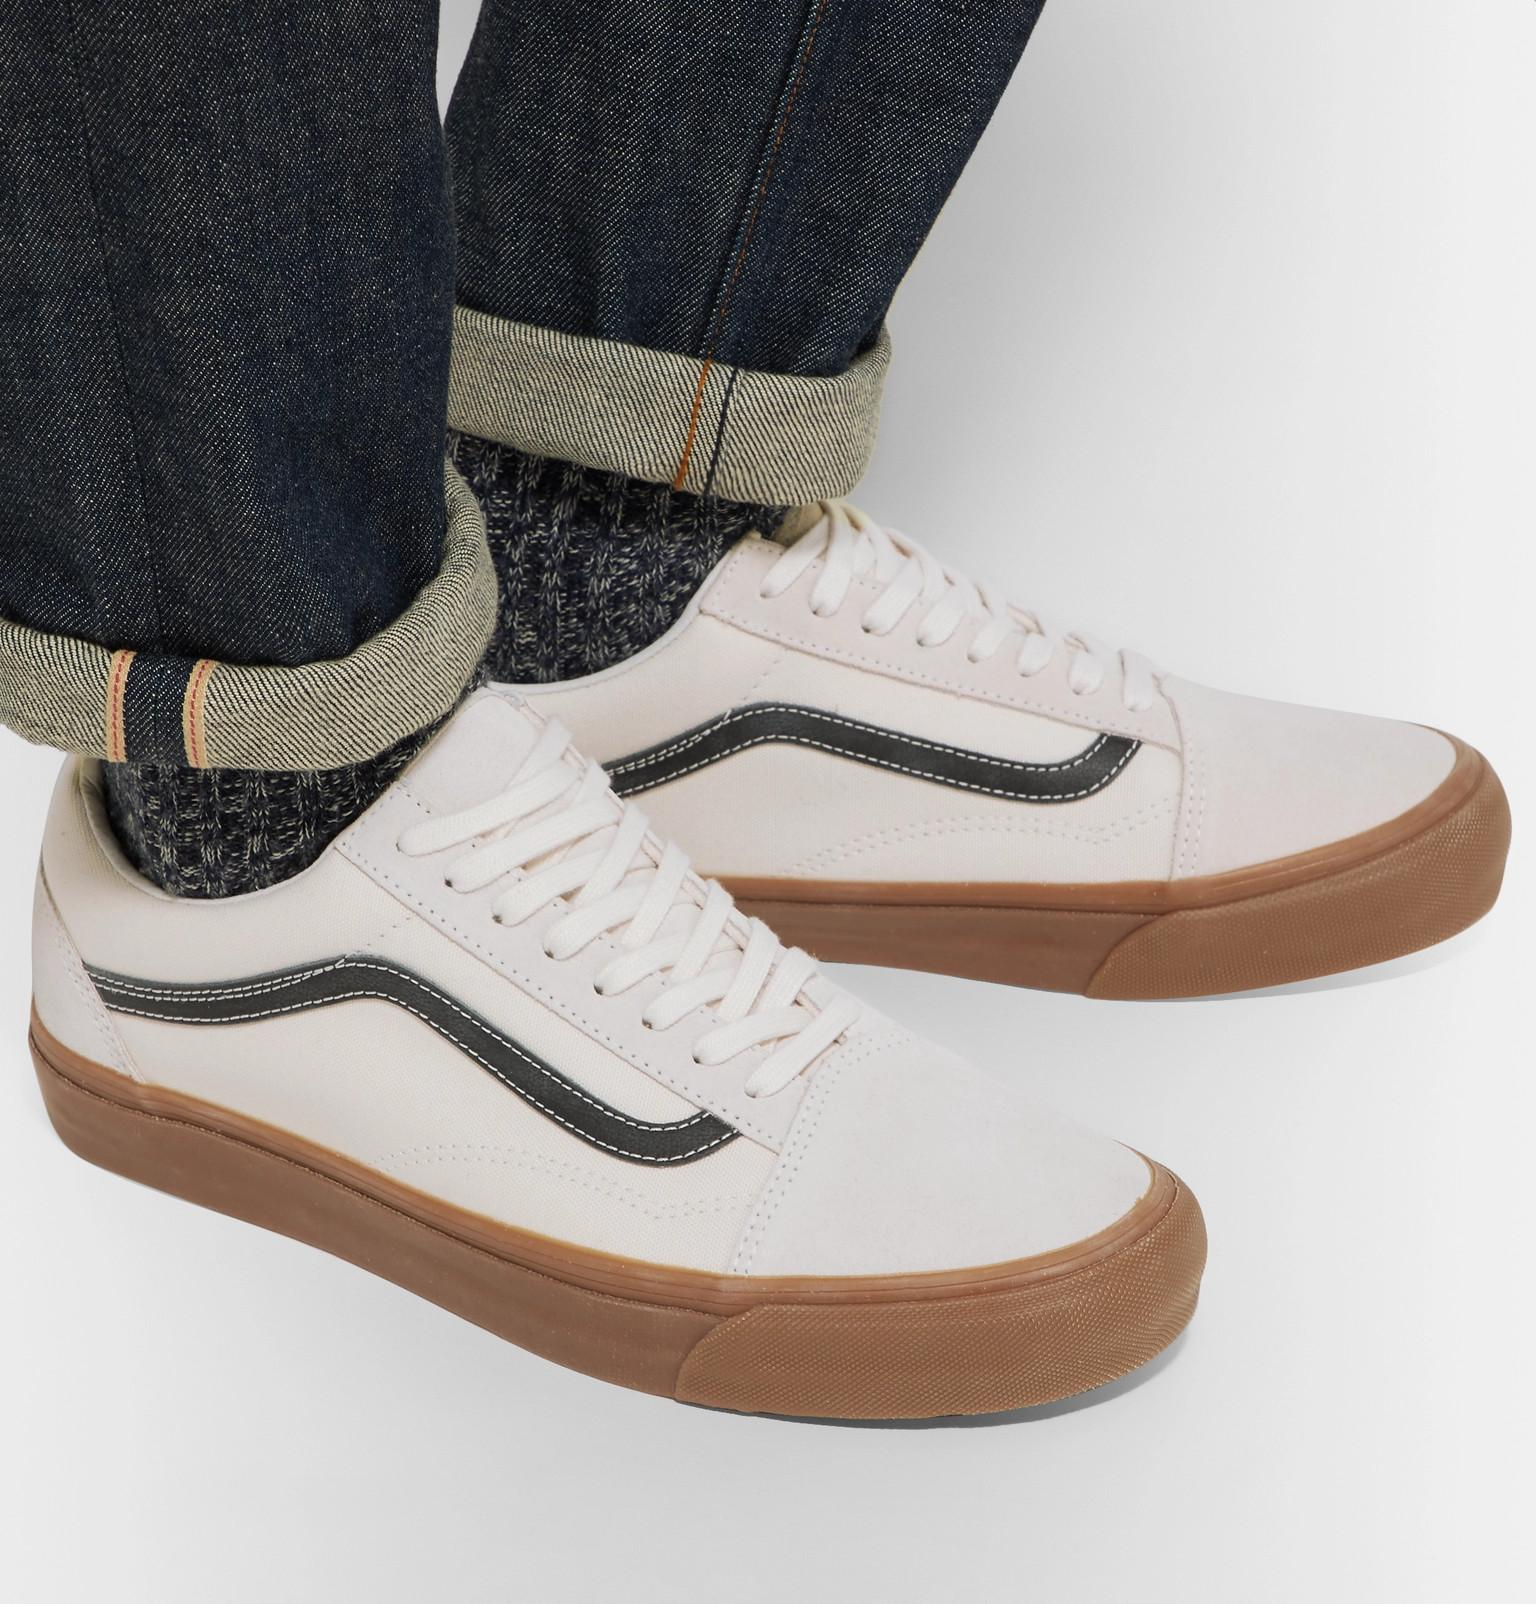 a02c81ad0d Lyst - Vans Og Old Skool Lx Leather-trimmed Canvas And Suede ...